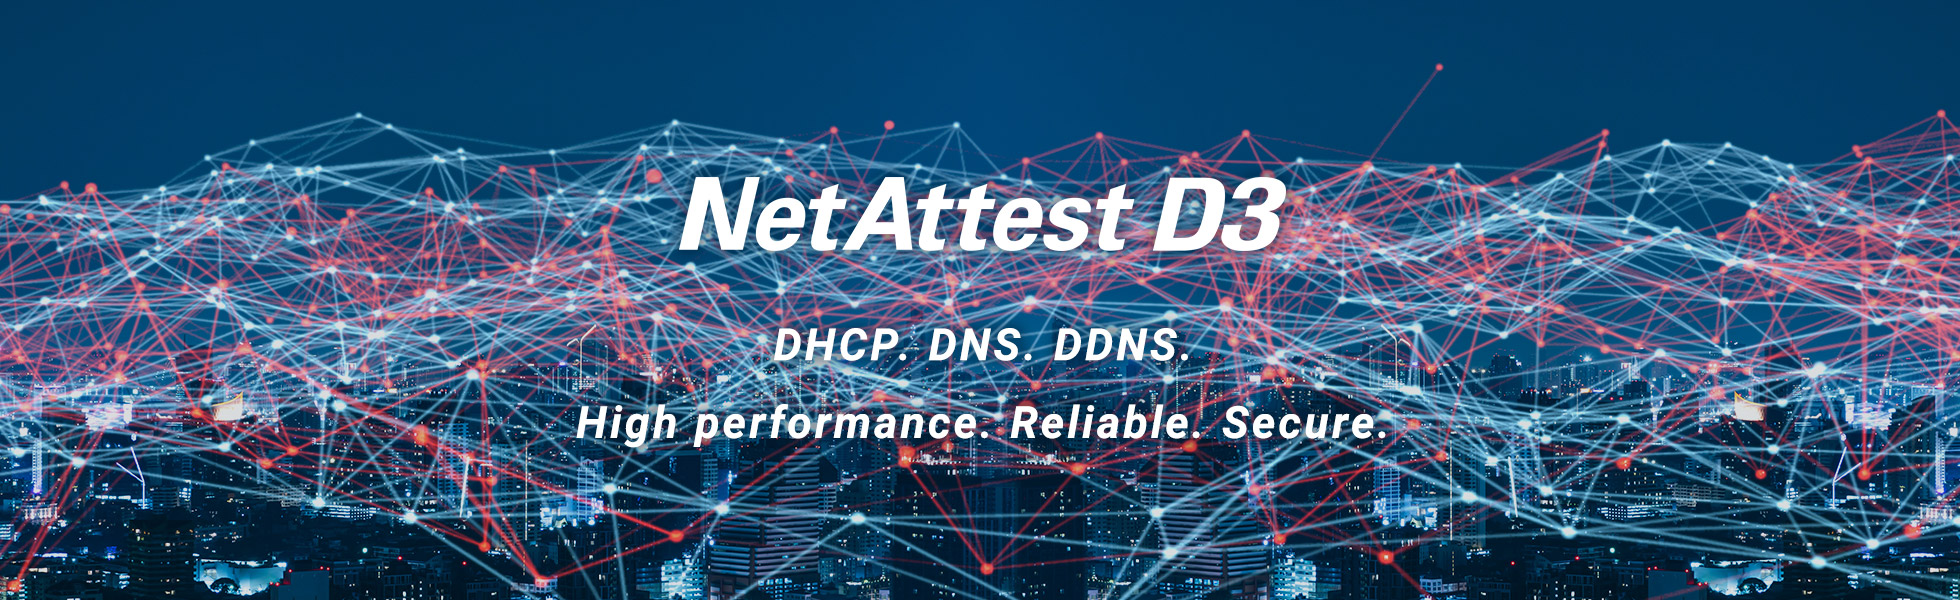 DHCP, DNS, DDNS, High performance. Reliable. Secure.